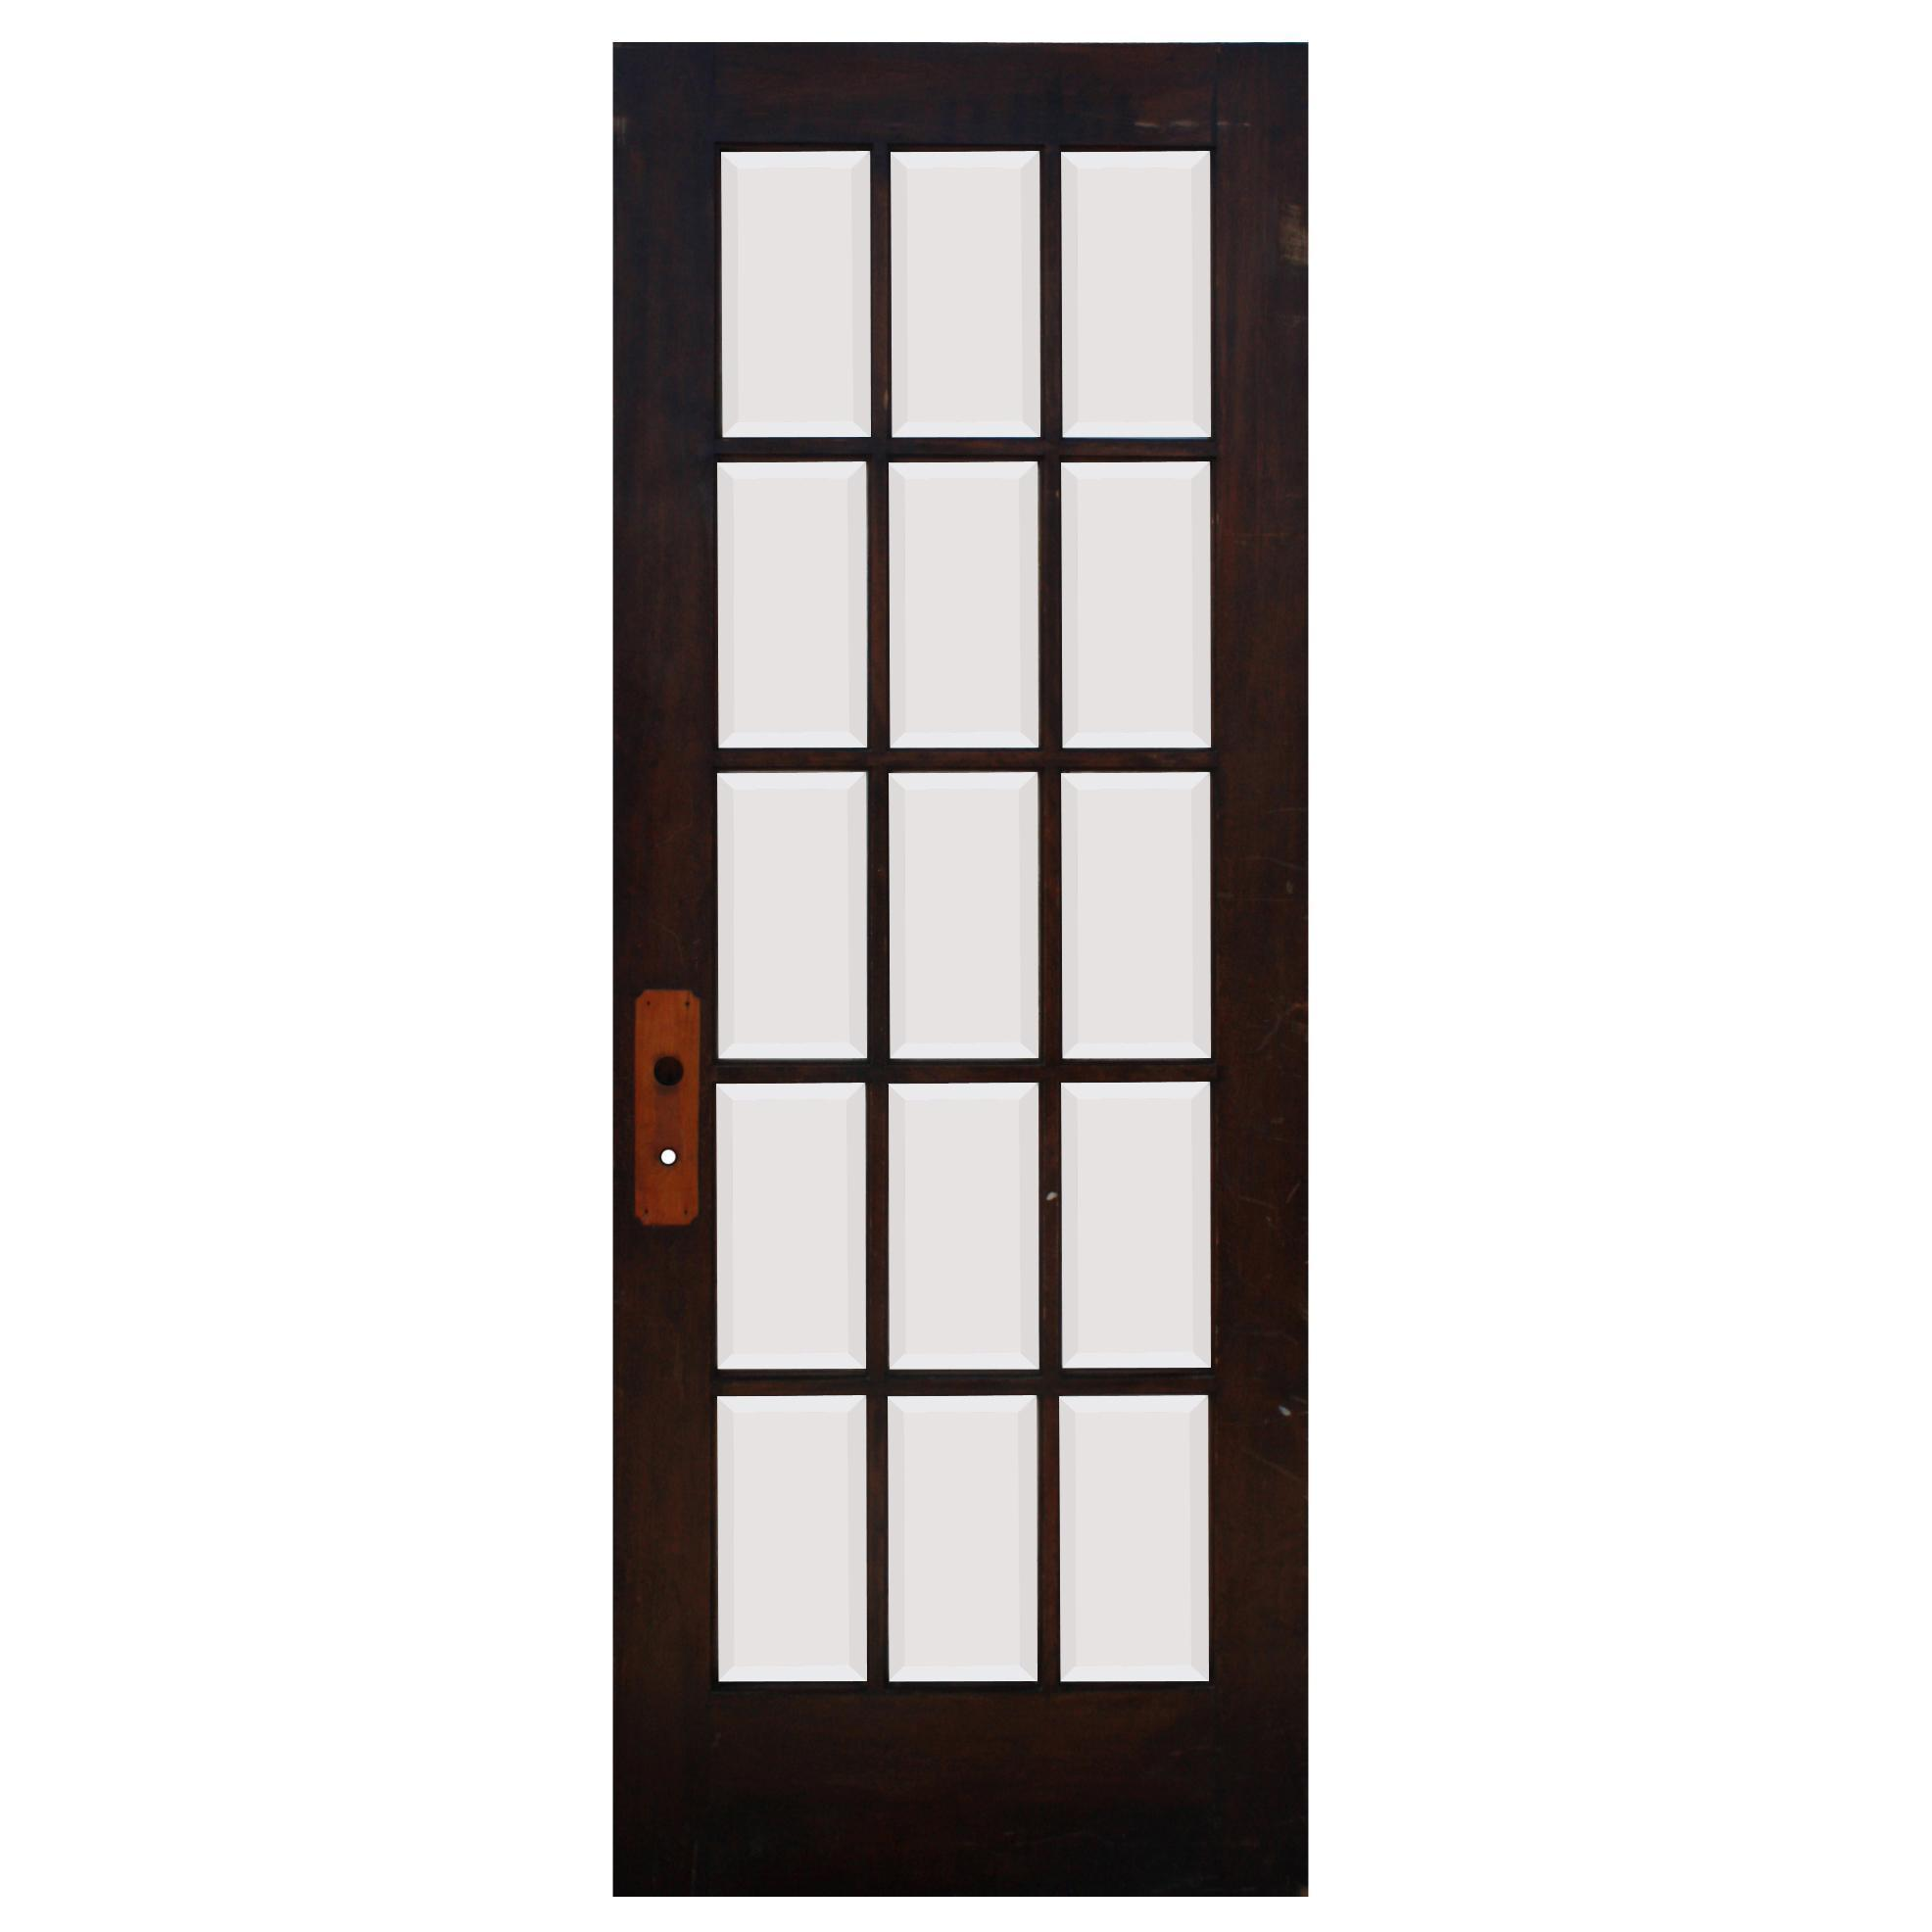 "Reclaimed 32"" Divided Light French Door, Beveled Glass"